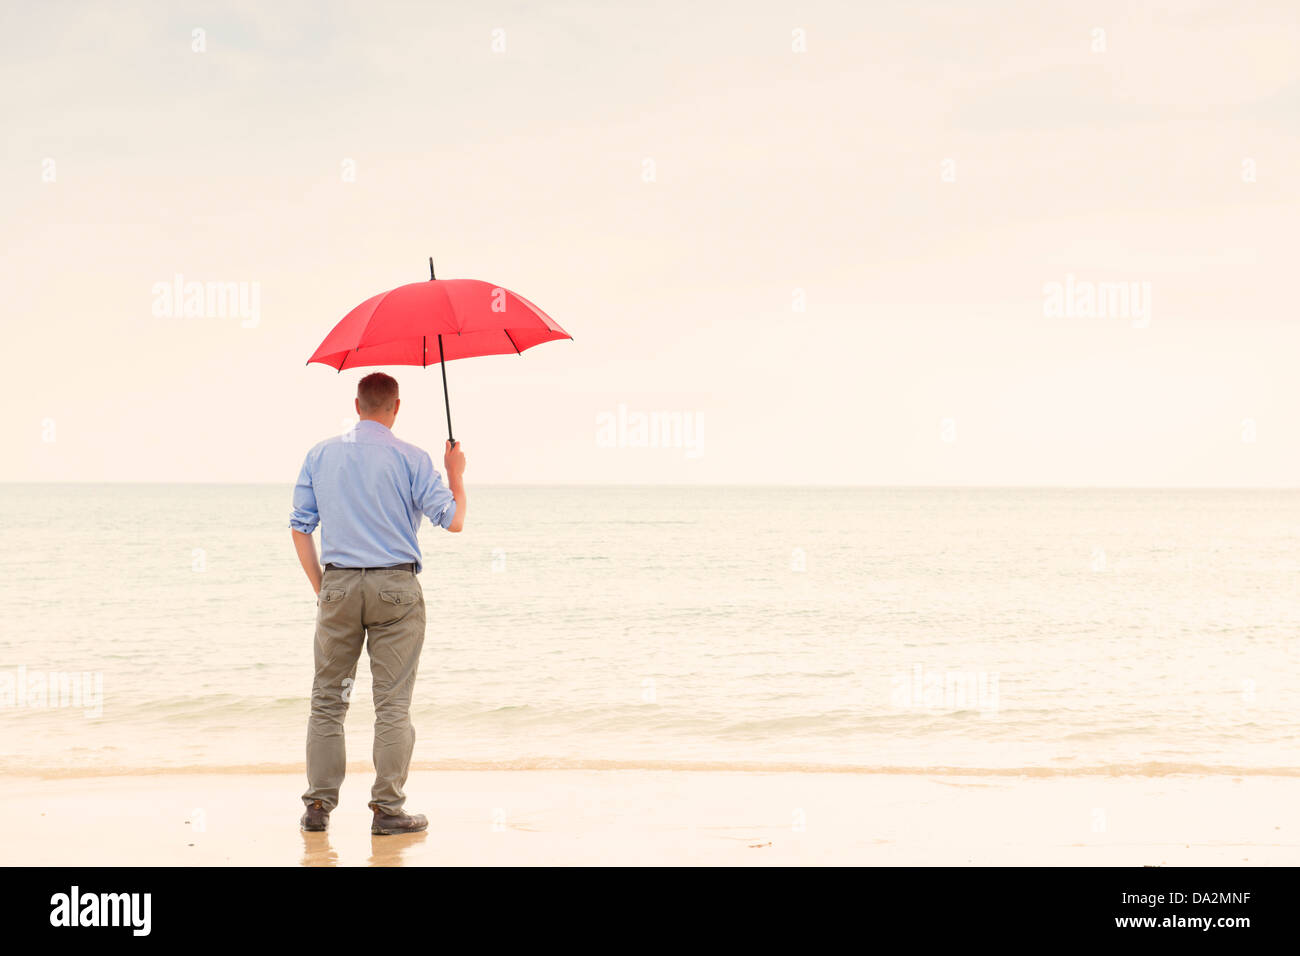 Man stands looking out to sea with red umbrella. Contemplation, solitude, loneliness. - Stock Image